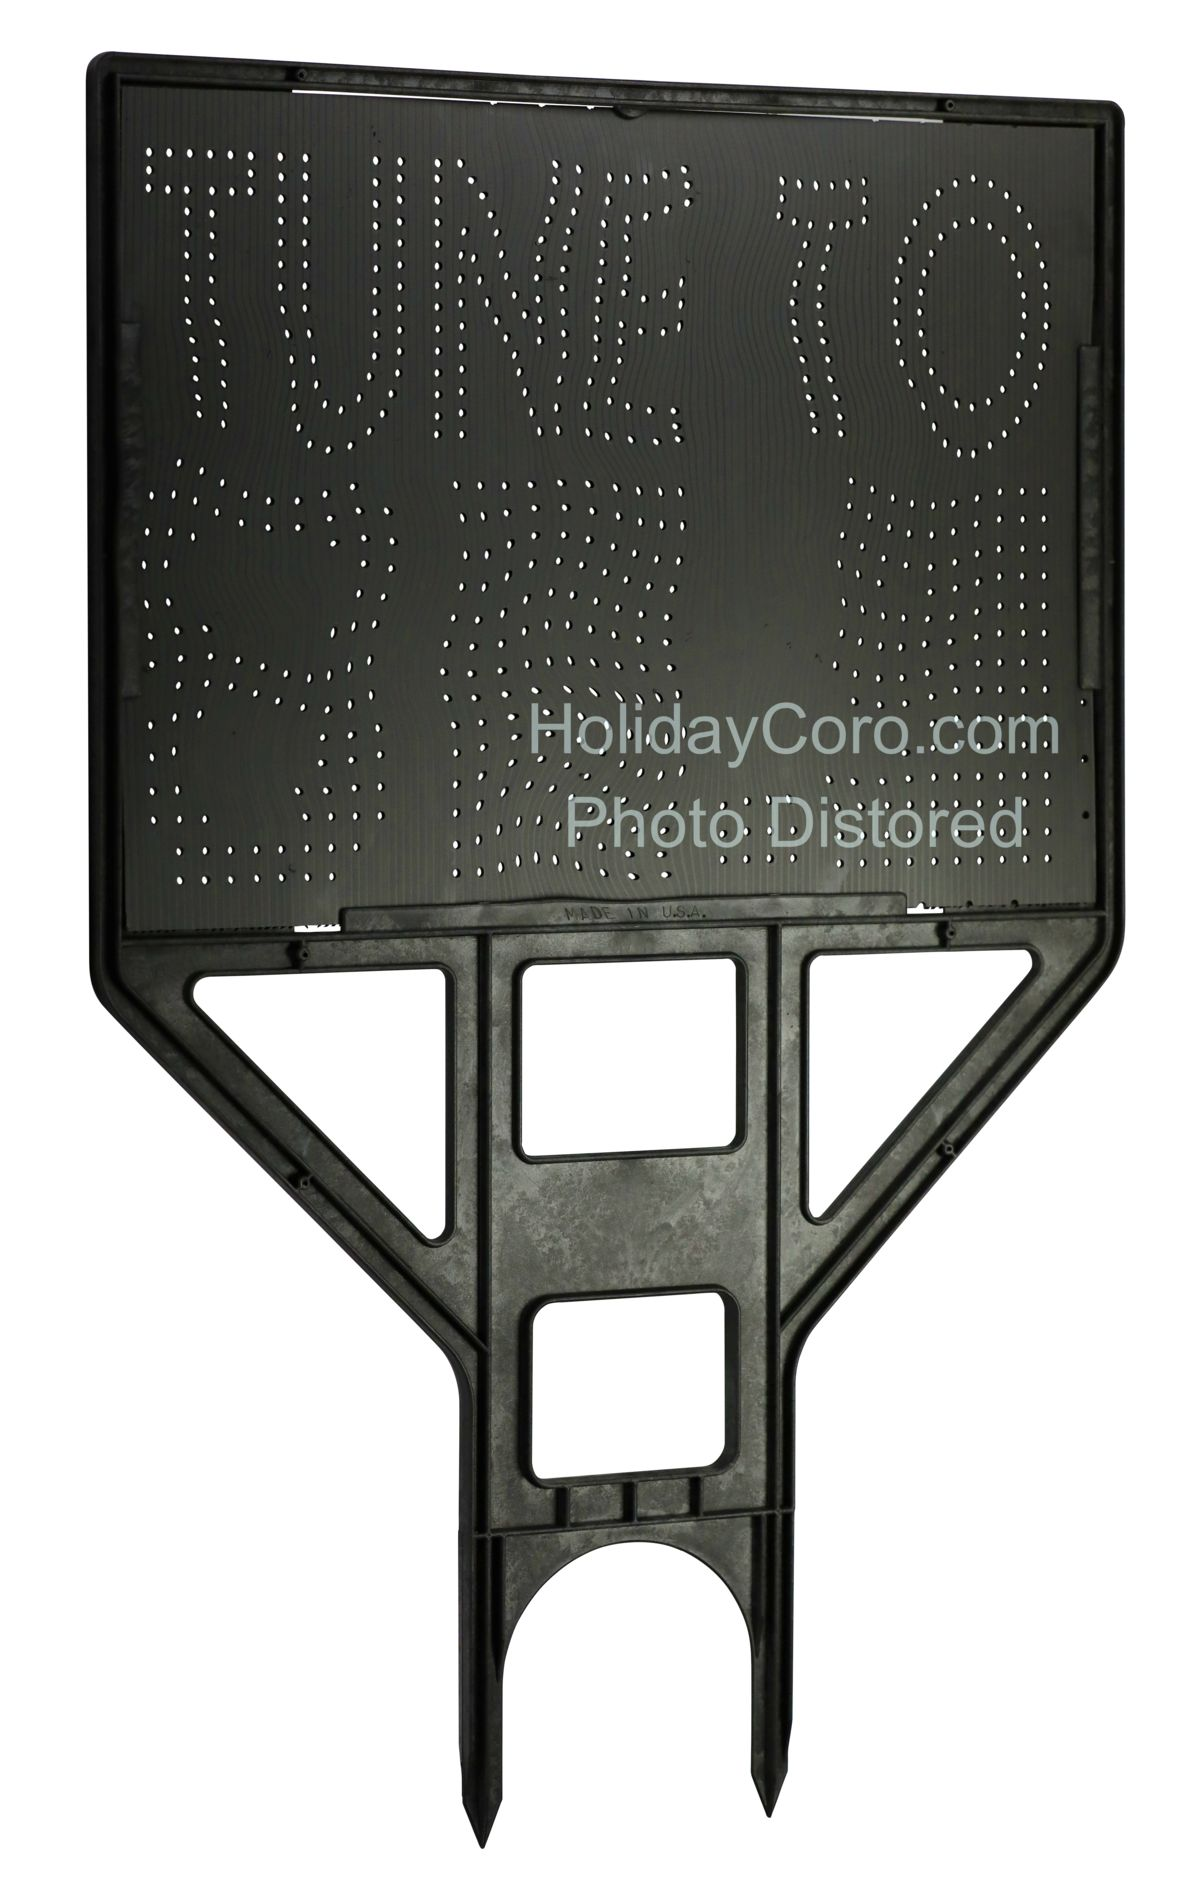 Fm Radio Frequency Quot Tune To Quot Sign For Animated Holiday